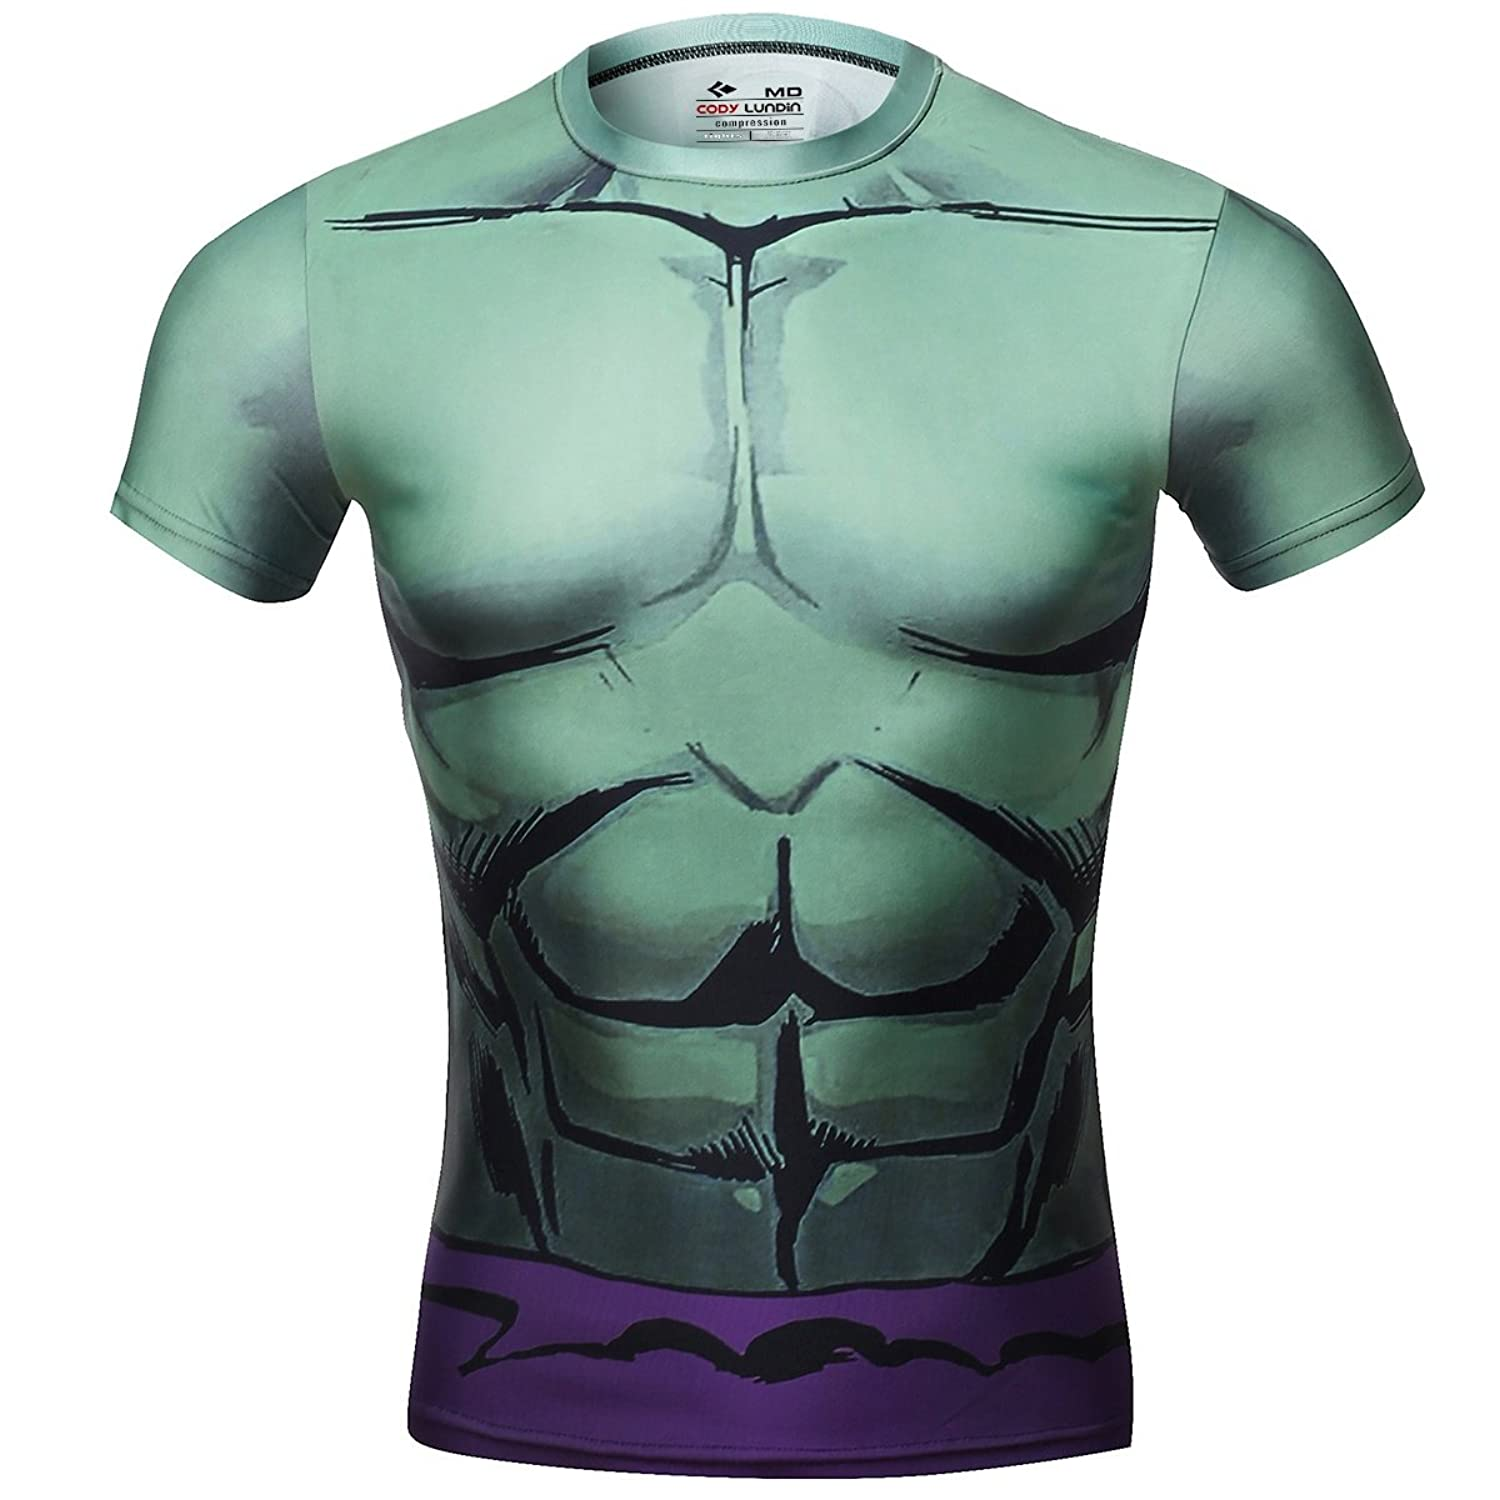 Cody Lundin Men's Compression Rash Guard The Green-Skinned Monster